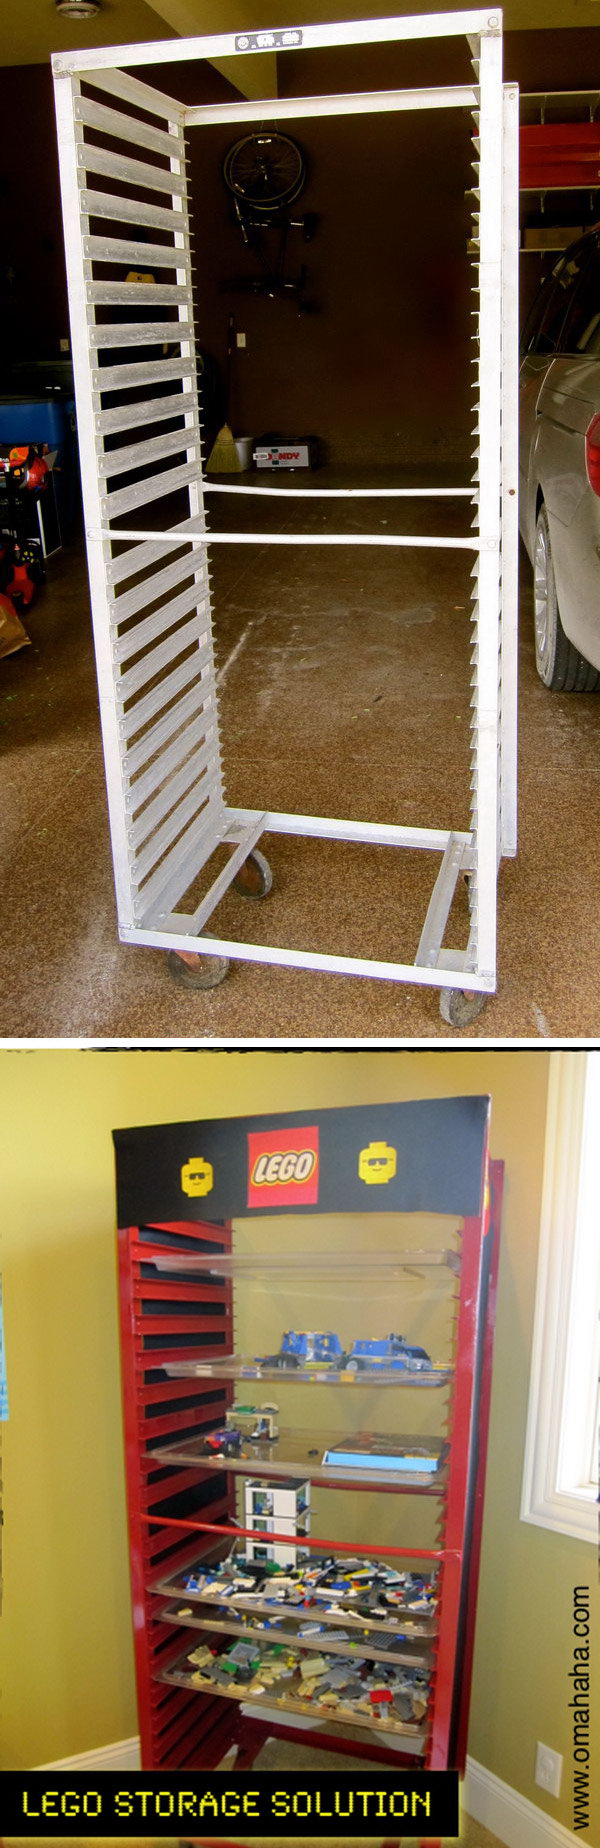 A LEGO storage made from a bun pan rack. Kids can stack their works in progress on a tray and slide them in the rack.